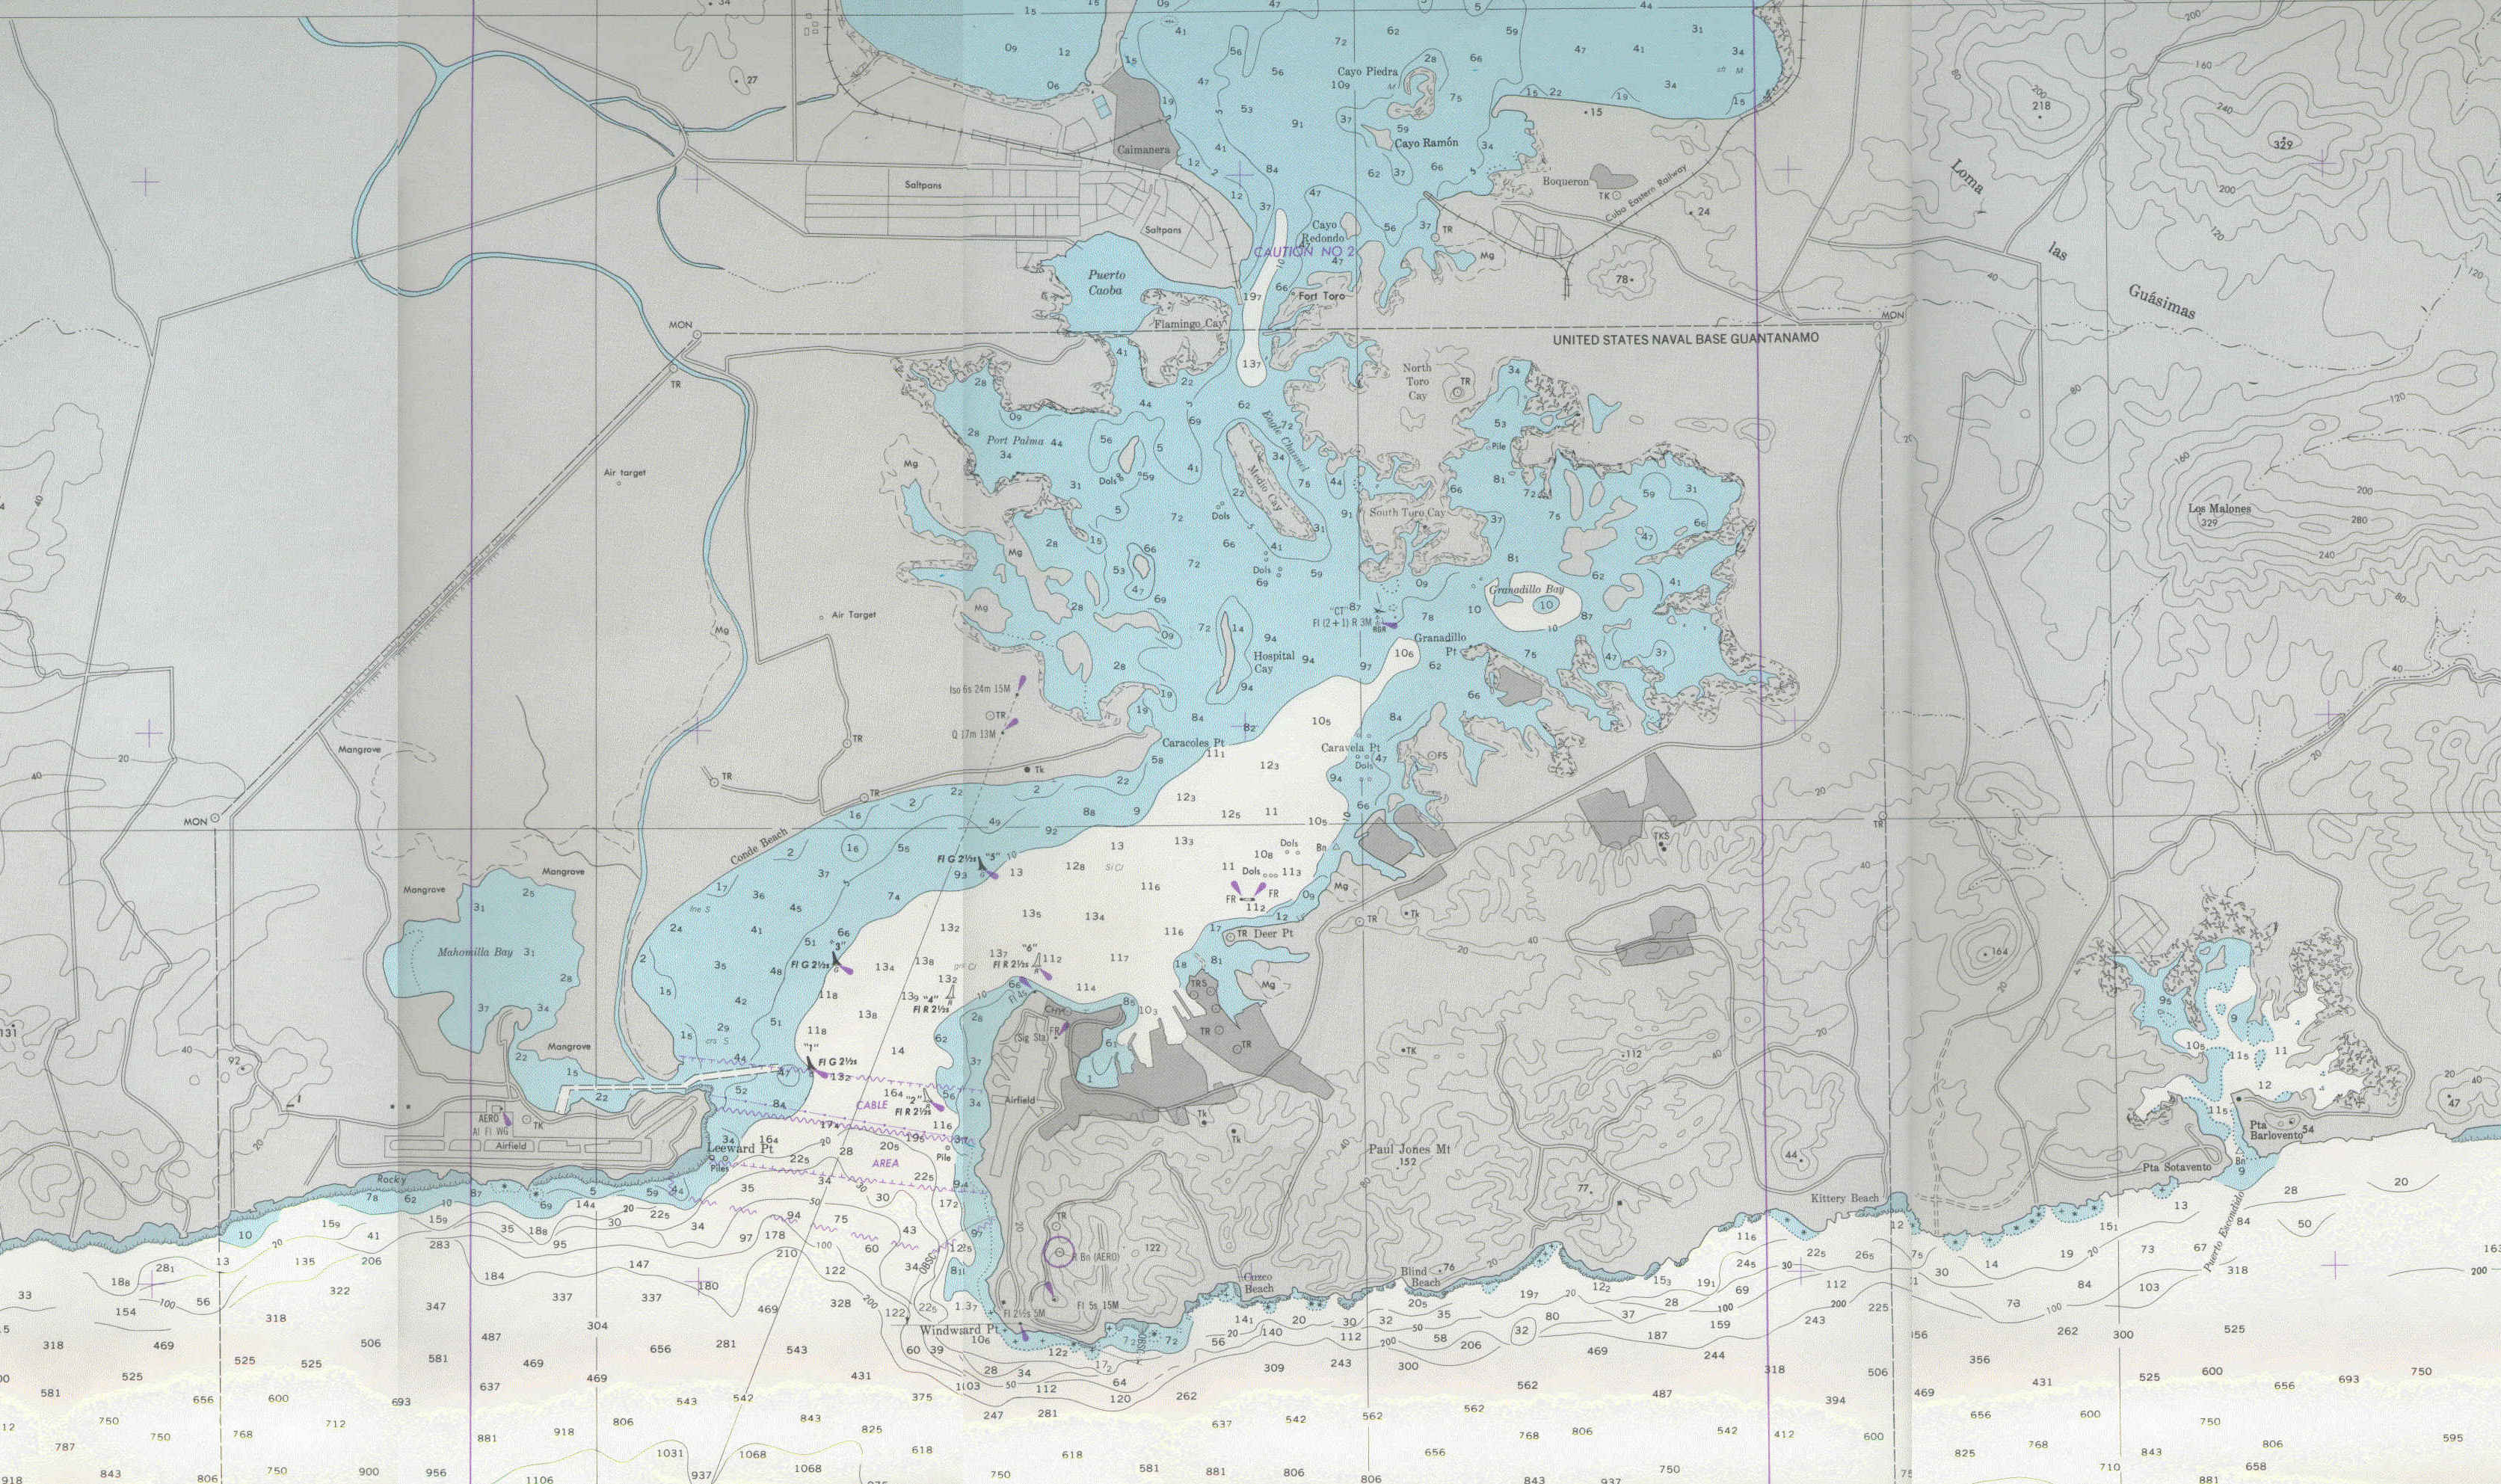 Source Excerpted From Hardcopy Of Us Defense Mapping Agency Nautical Chart No